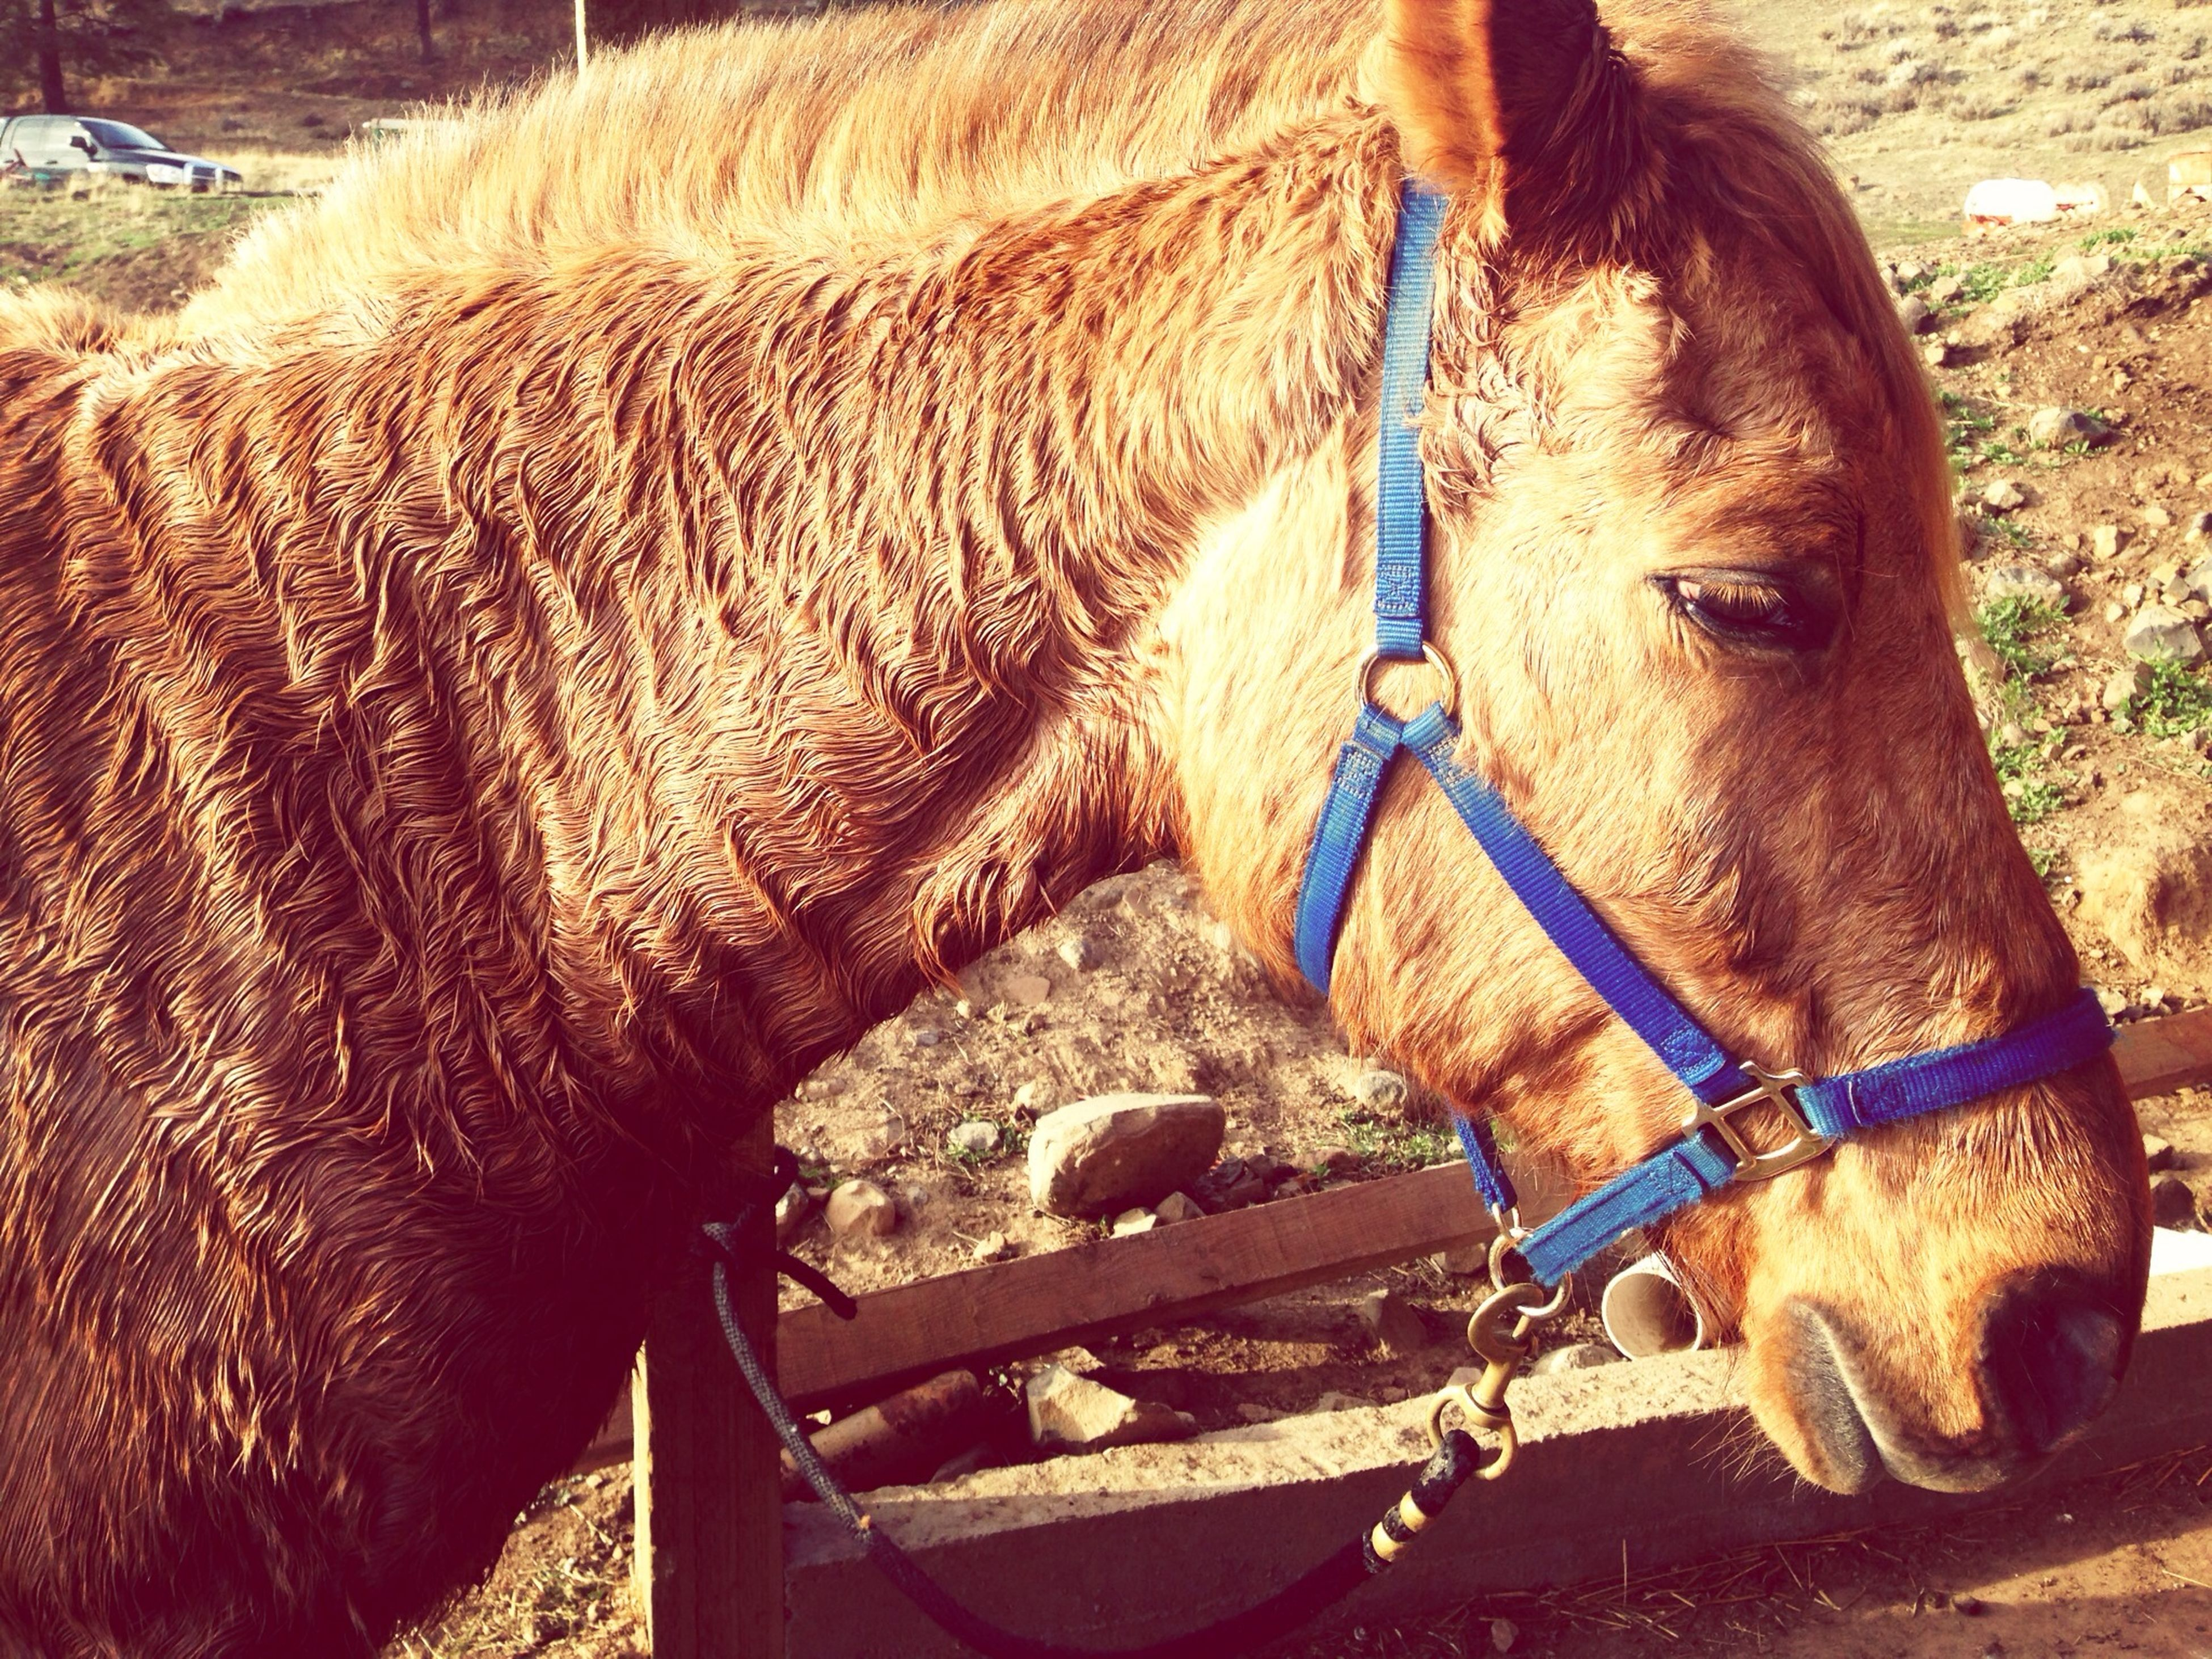 domestic animals, mammal, animal themes, horse, one animal, livestock, working animal, bridle, part of, close-up, animal head, field, one person, herbivorous, brown, day, outdoors, standing, animal body part, transportation